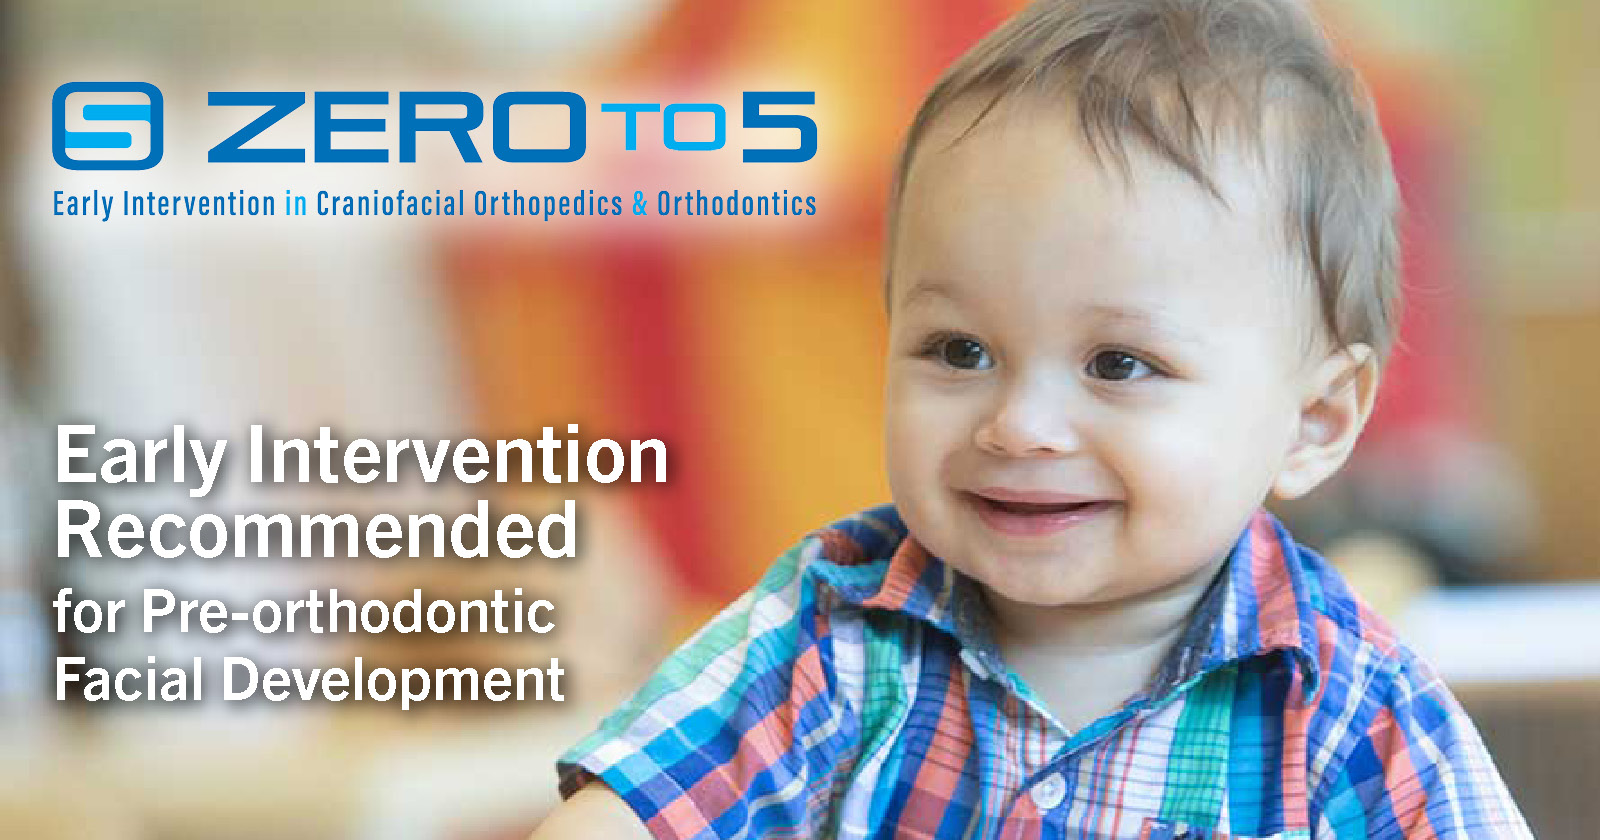 Zero to 5: Early Intervention Recommended for Pre-orthodontic Facial Development